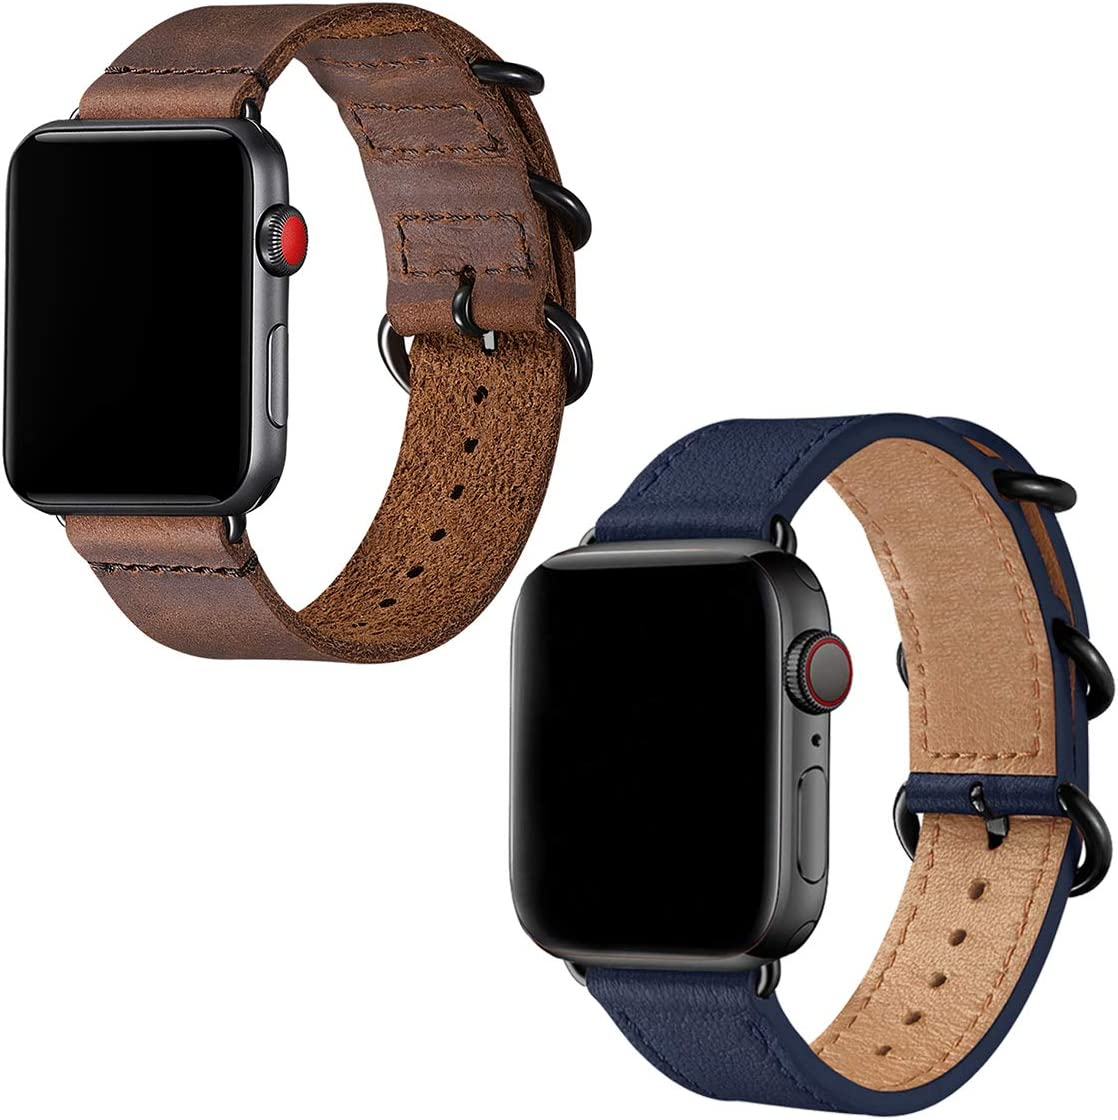 Leather Bands Compatible with Apple Watch band 42mm 44mm,Genuine Leather Strap Compatible for Men Women iWatch Series5 Series4/3/2/1